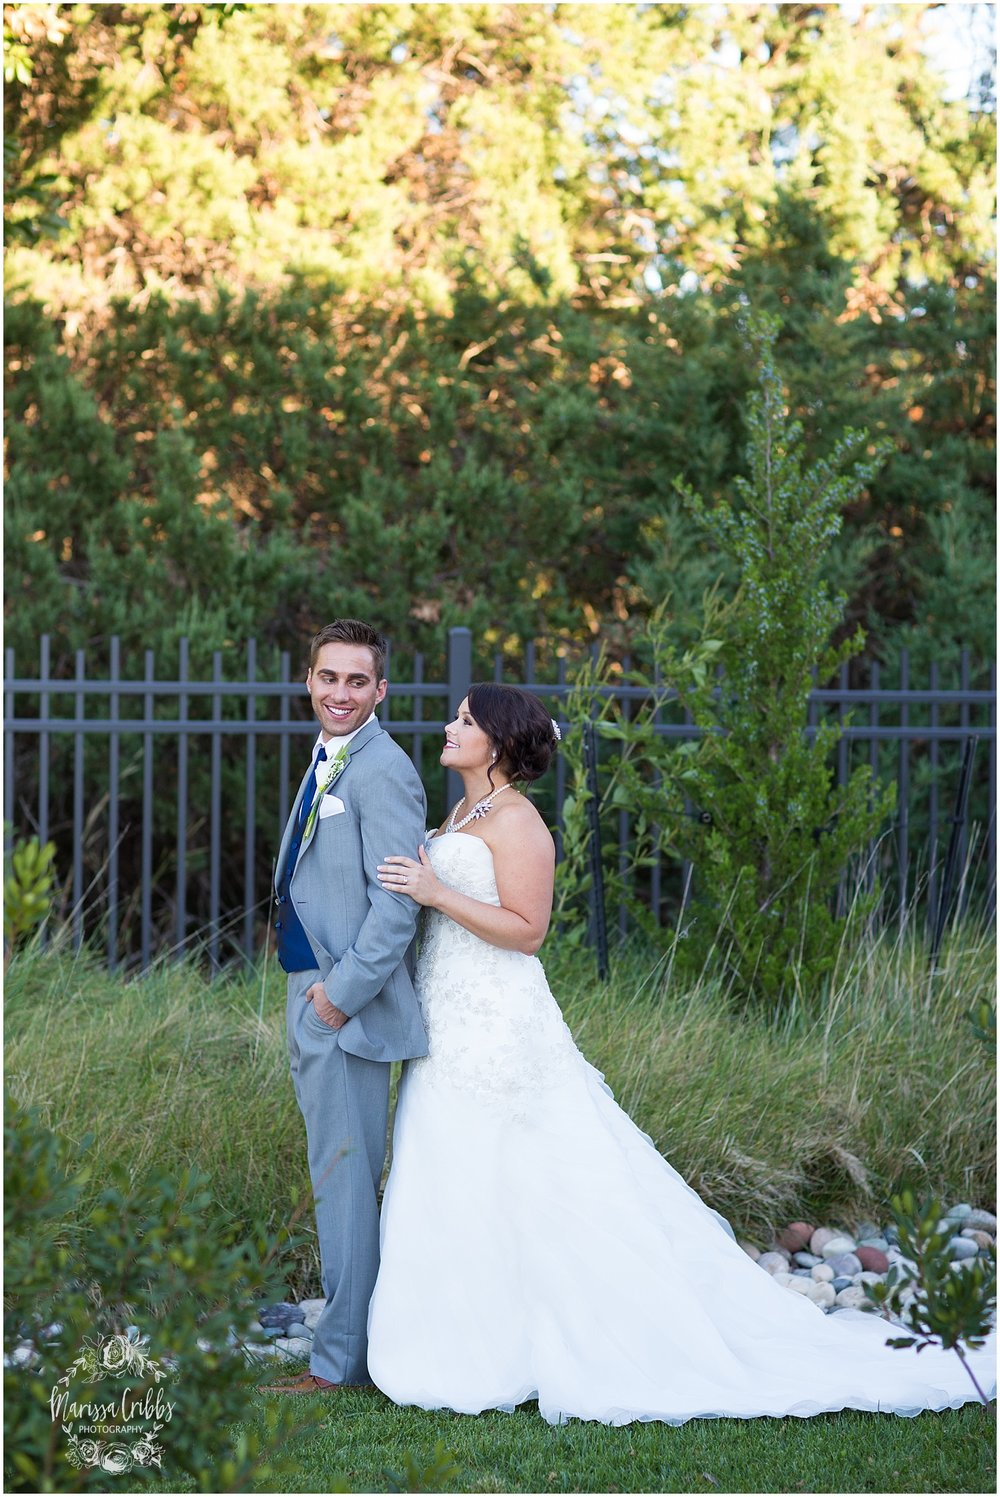 Sarah & Troy | Wichita KS Wedding Photography | Noah's Event Venue Wichita | Marissa Cribbs Photography_1013.jpg